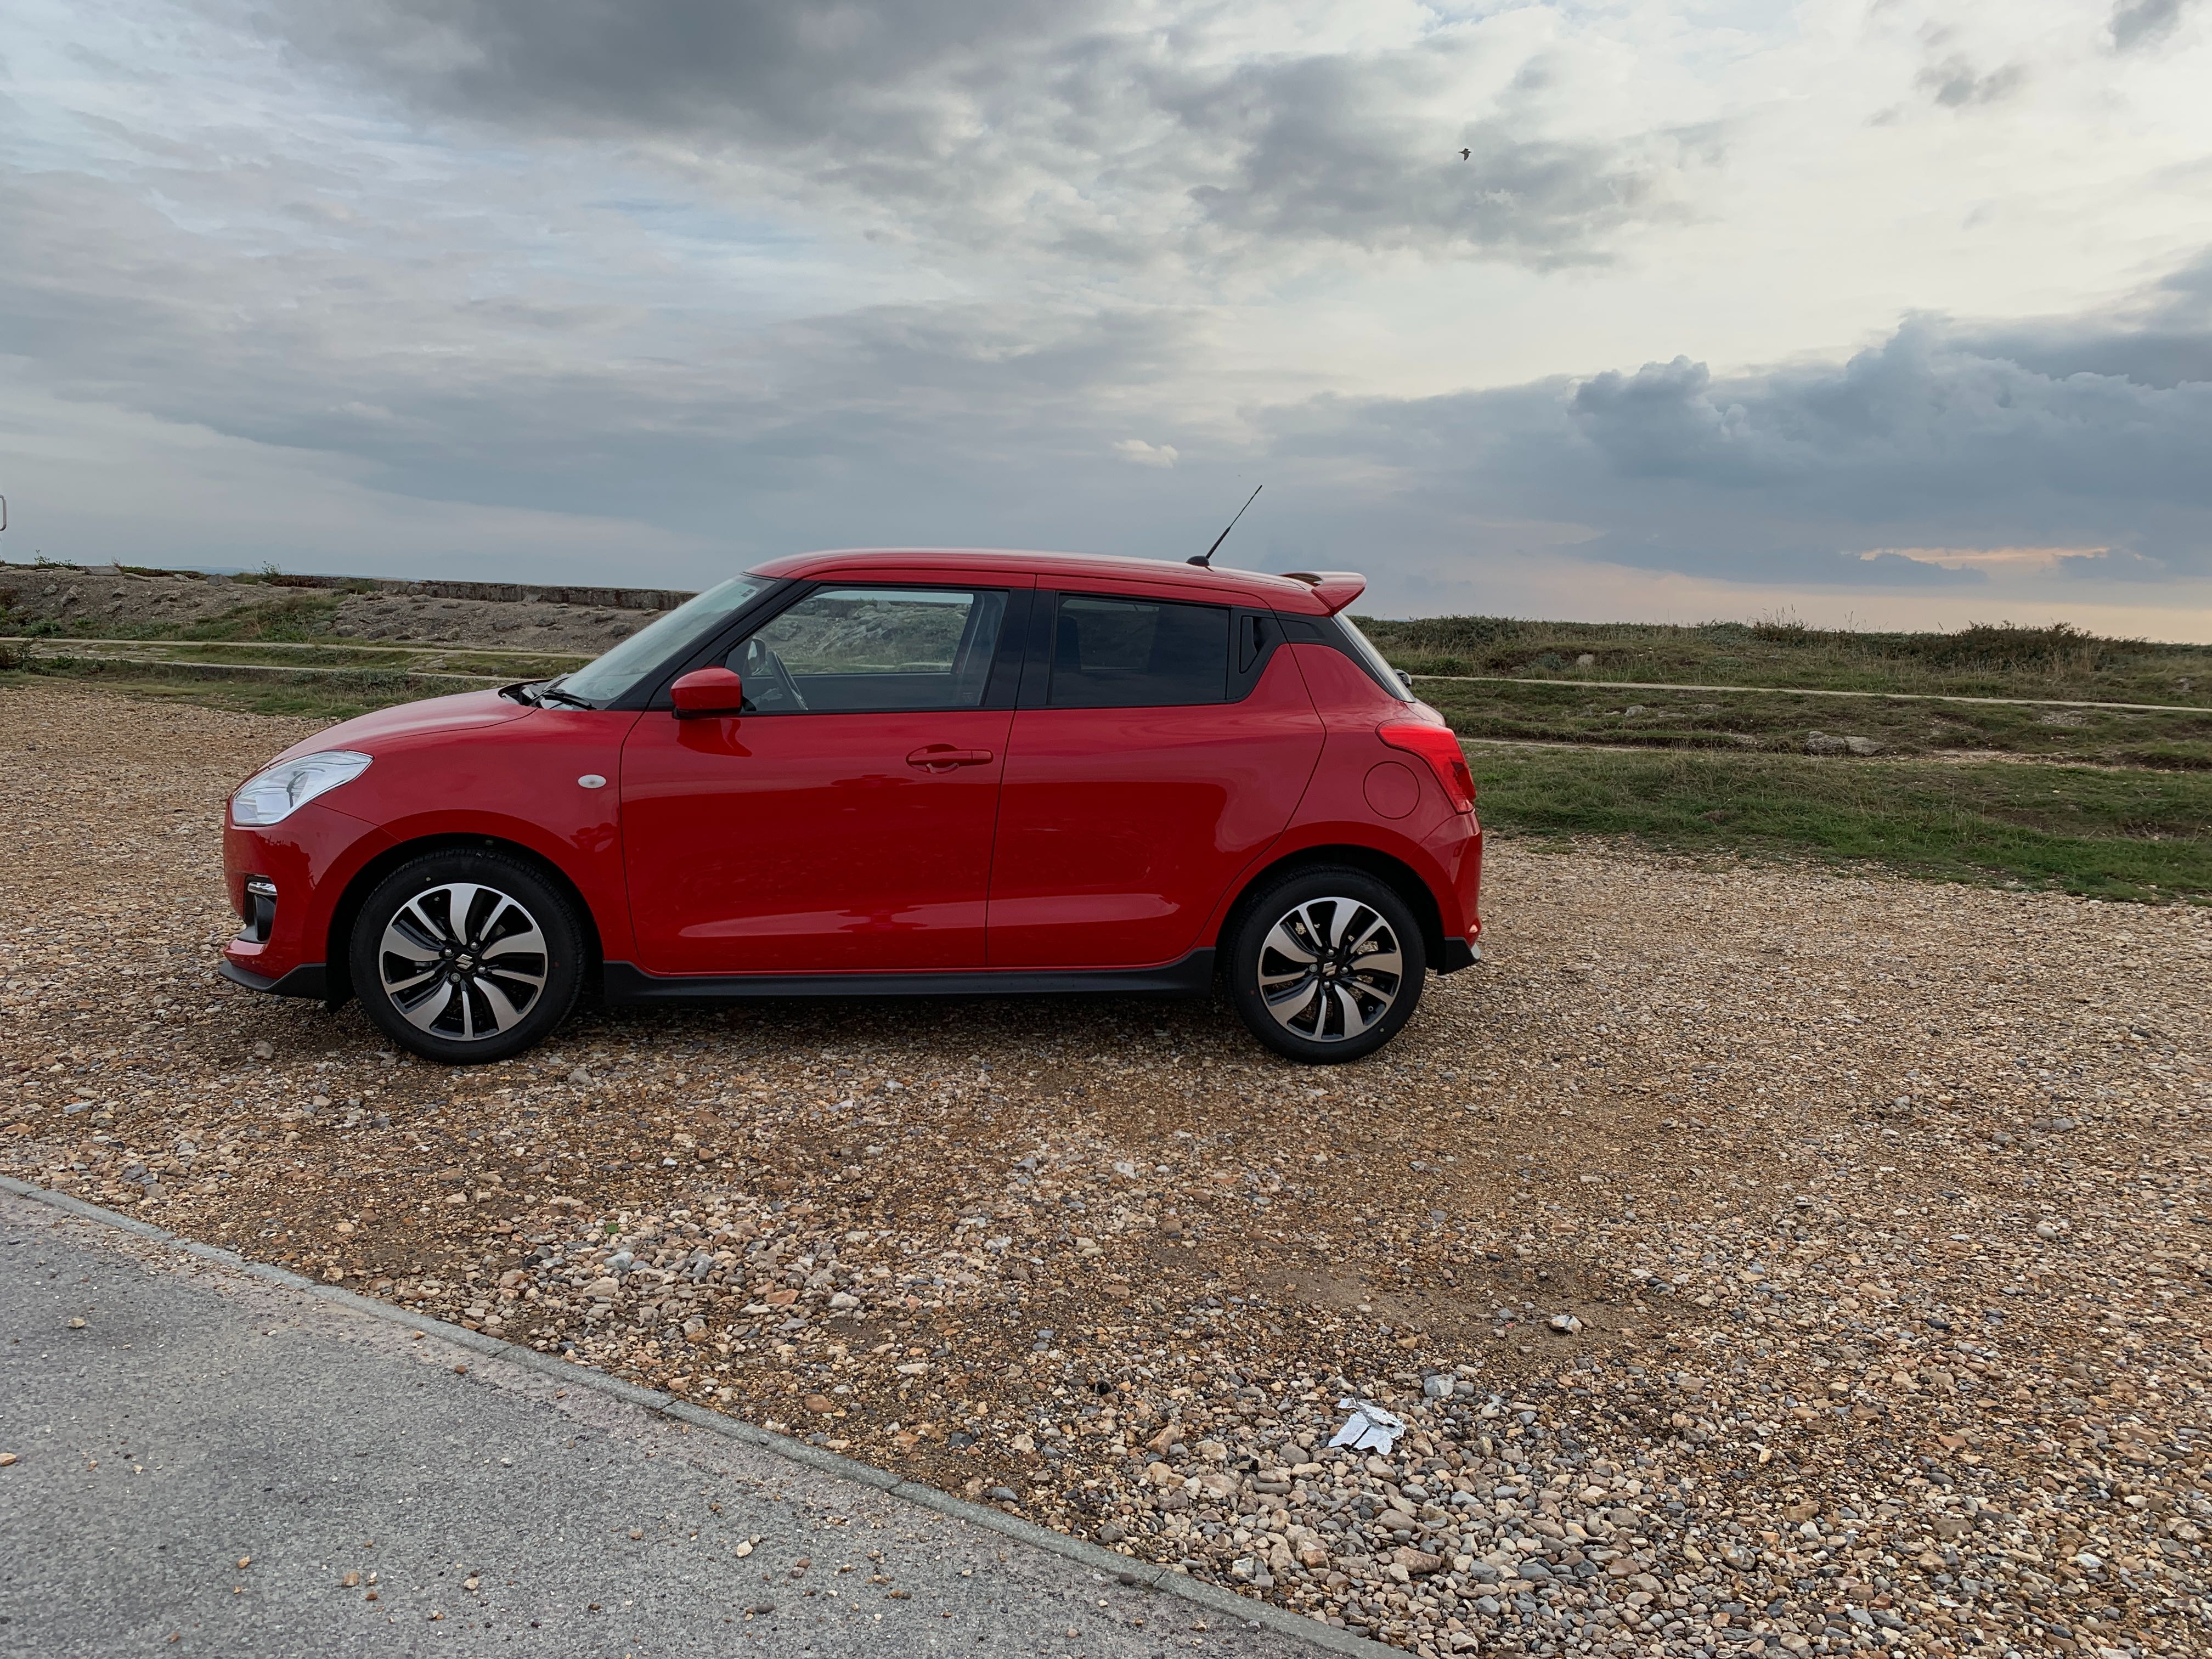 Despite its compact proportions, the Swift is still very practical